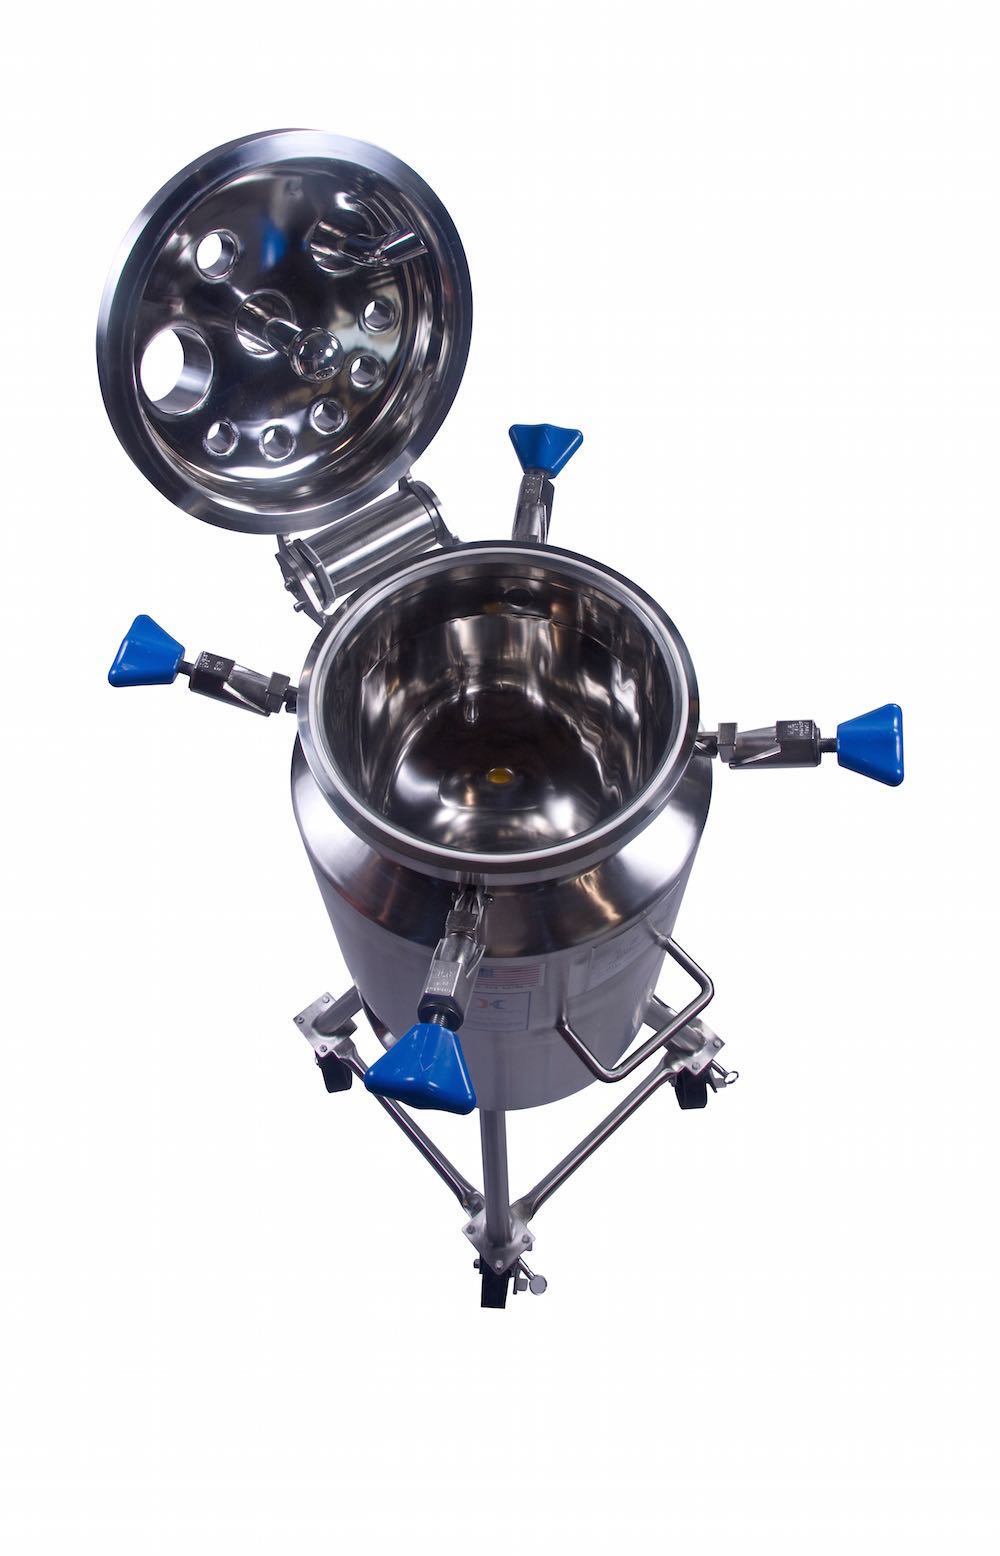 Pass testing for ASME pressure vessels with HOLLOWAY.